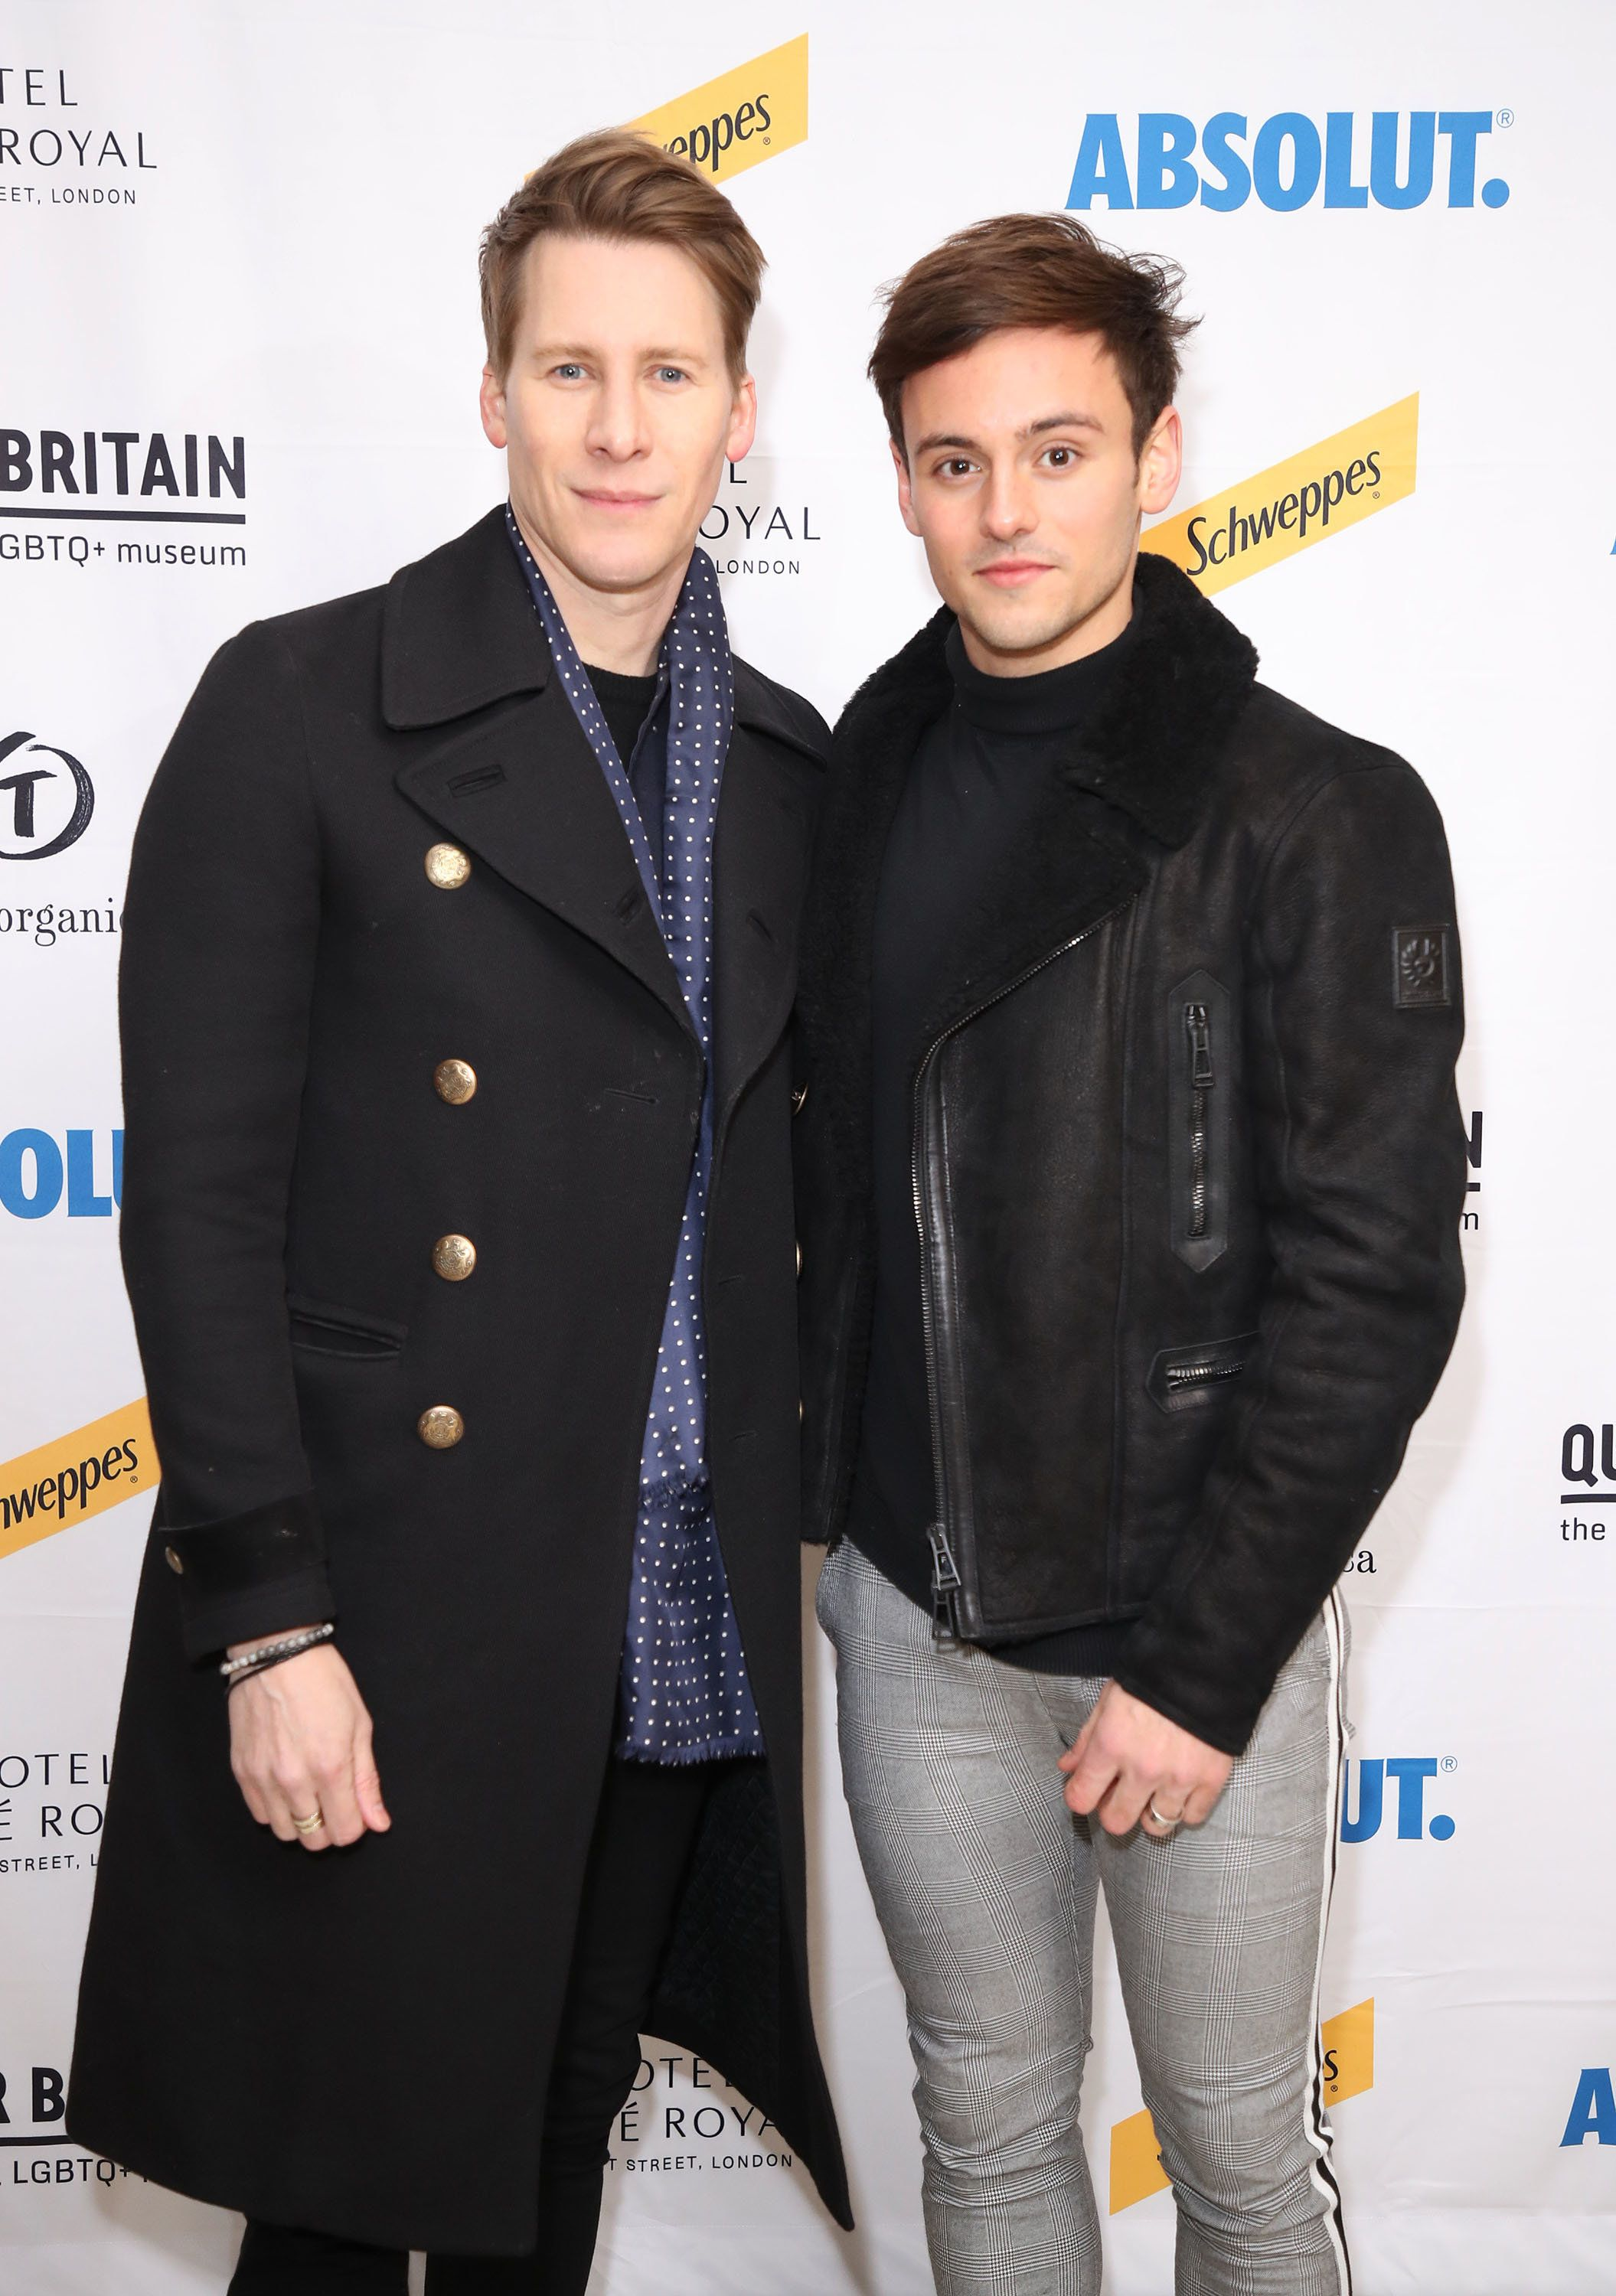 LONDON, ENGLAND - FEBRUARY 28:  Dustin Lance Black and Tom Daley attend the launch of the Queer Briain National LGBTQ+ Museum at Cafe Royal on February 28, 2018 in London, England.  (Photo by Mike Marsland/Mike Marsland/WireImage)